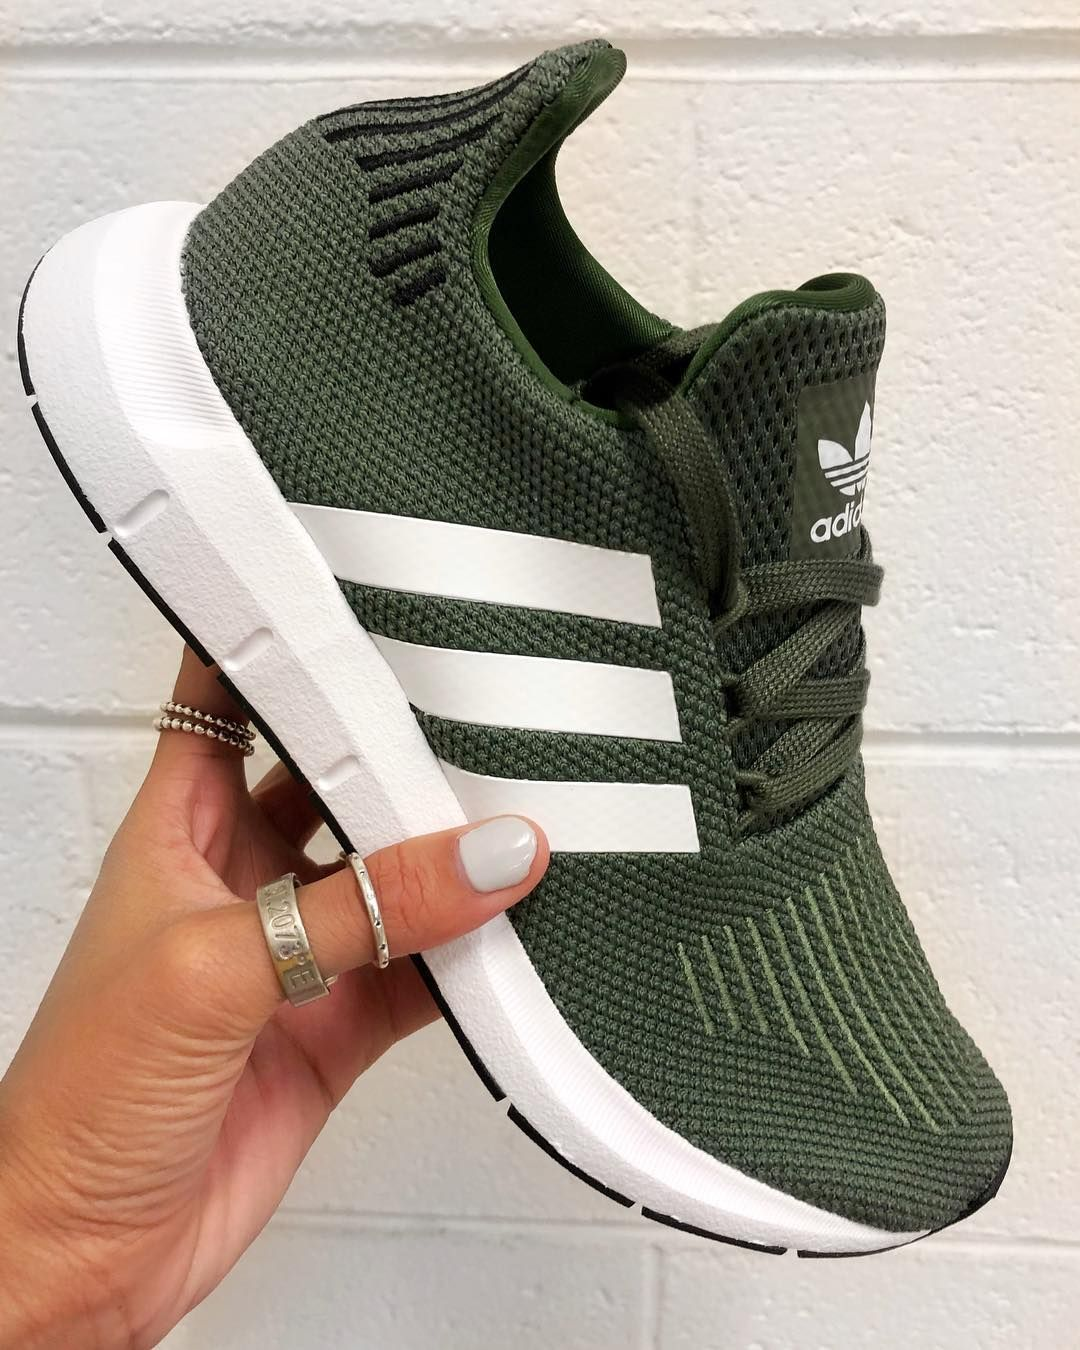 watch c56fa bbb0d adidas Originals Swift Run – Green – AQ0866 - Shoes. Stylish adidas shoes  displayed by woman with jewellery.